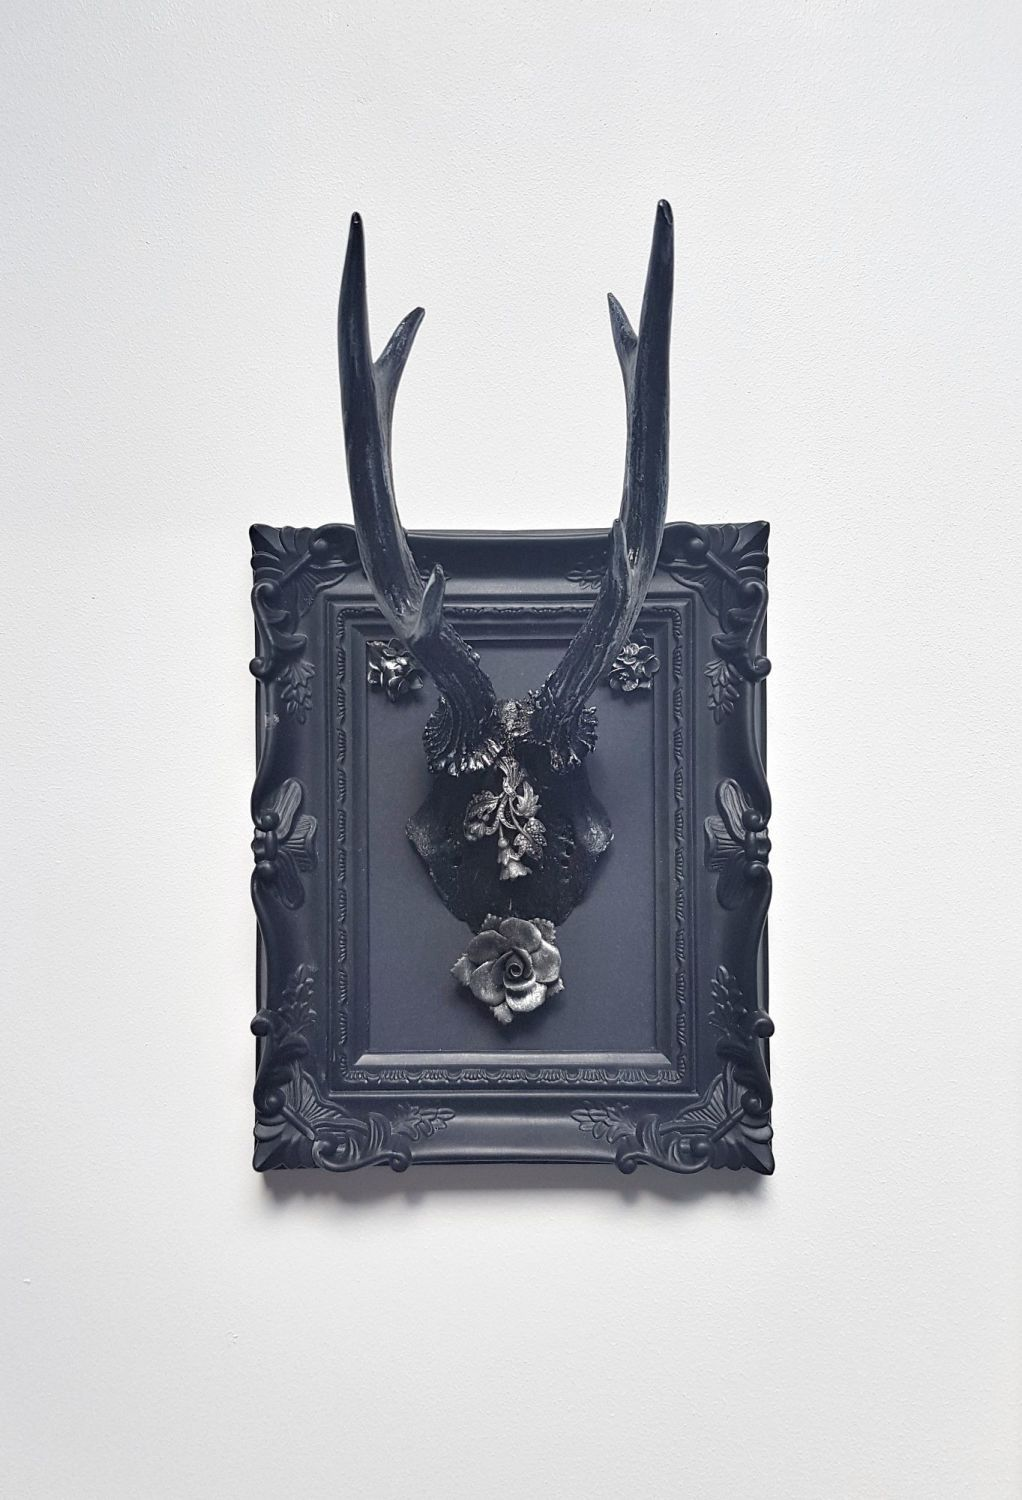 Gothic Roe Deer Skull With Large Antlers In Frame